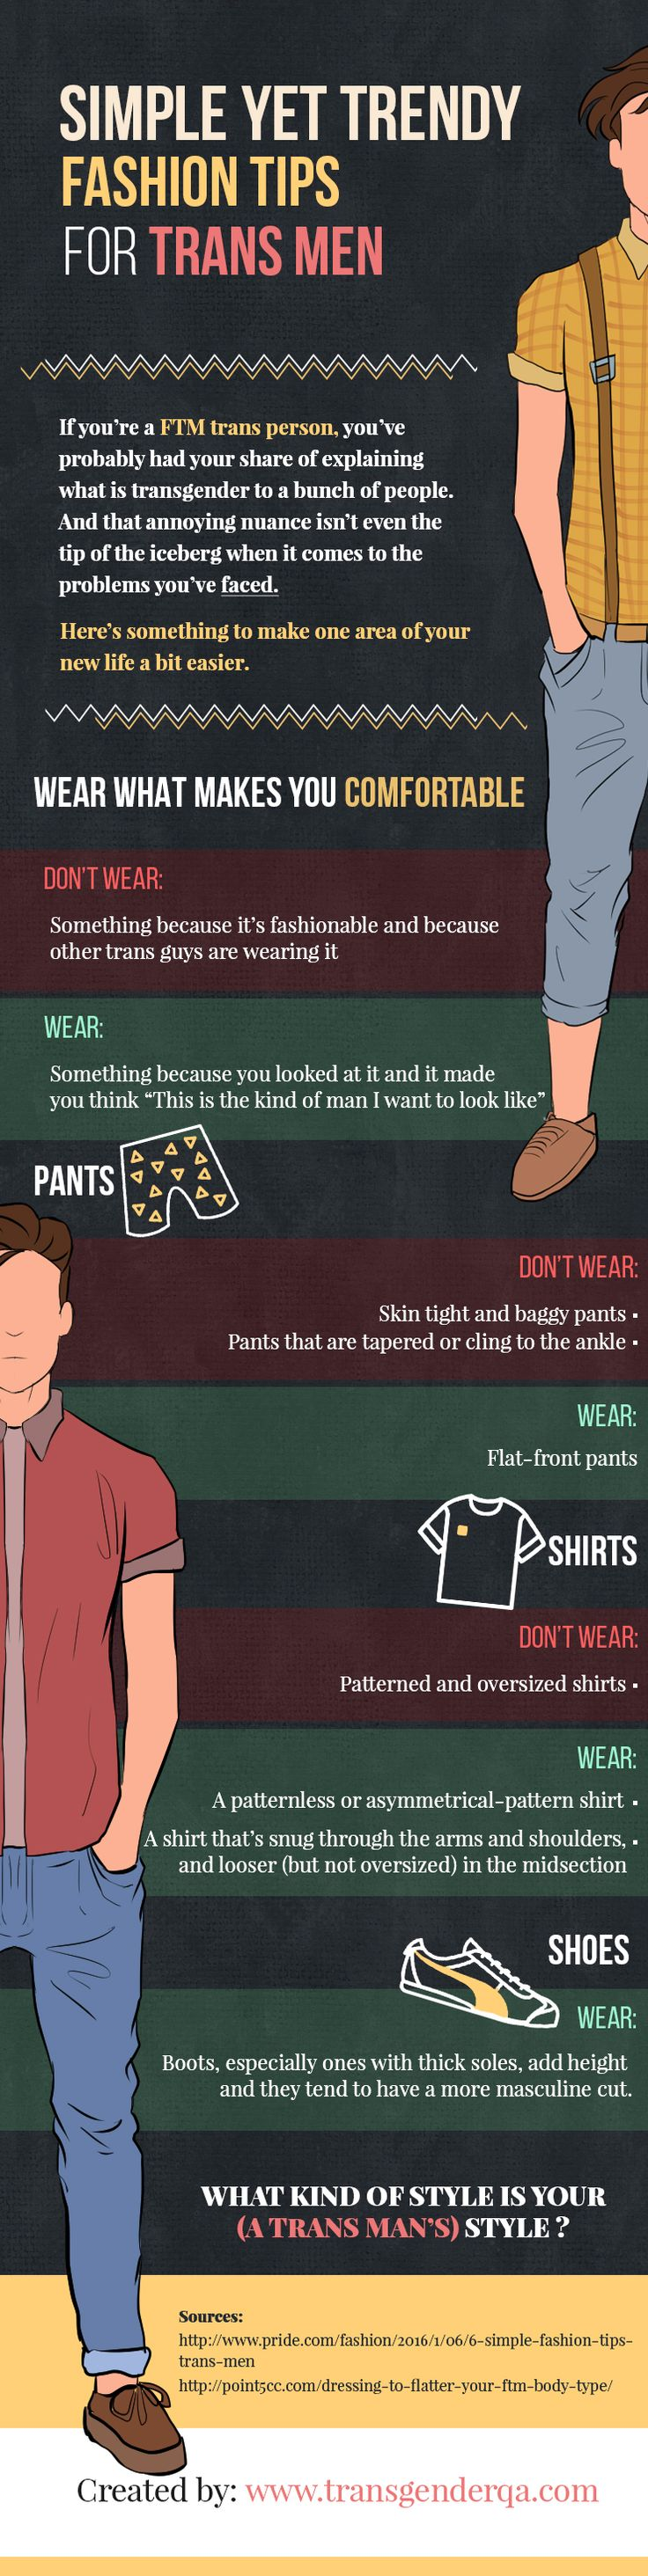 Simple Yet Trendy Fashion Tips for Trans Men